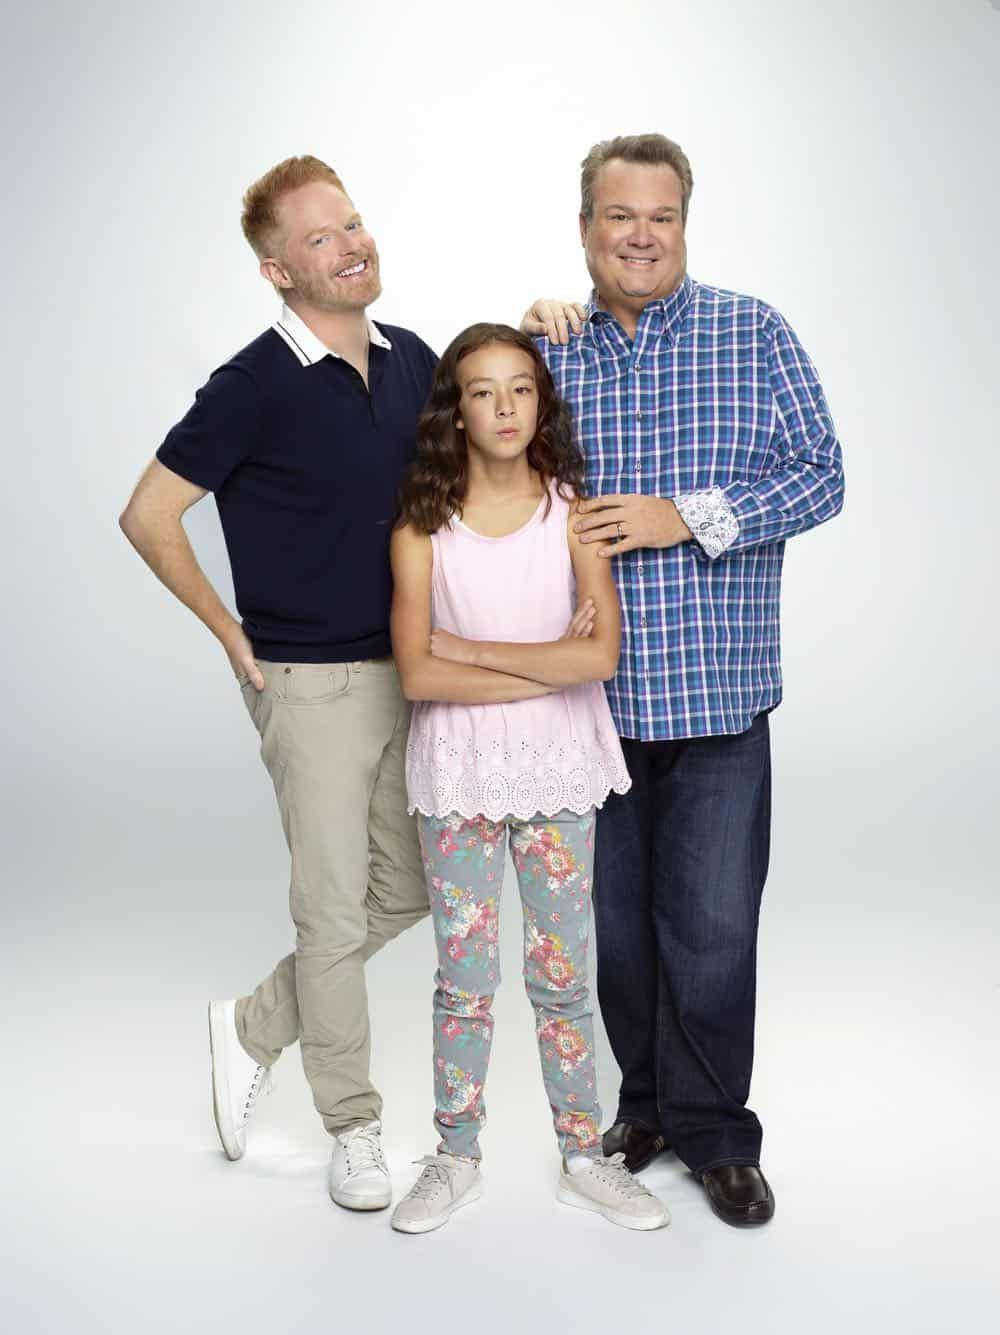 Modern Family Season 10 Cast Promo Photos Seat42f In 2020 Modern Family Tv Show Modern Family Cameron Cast Modern Family